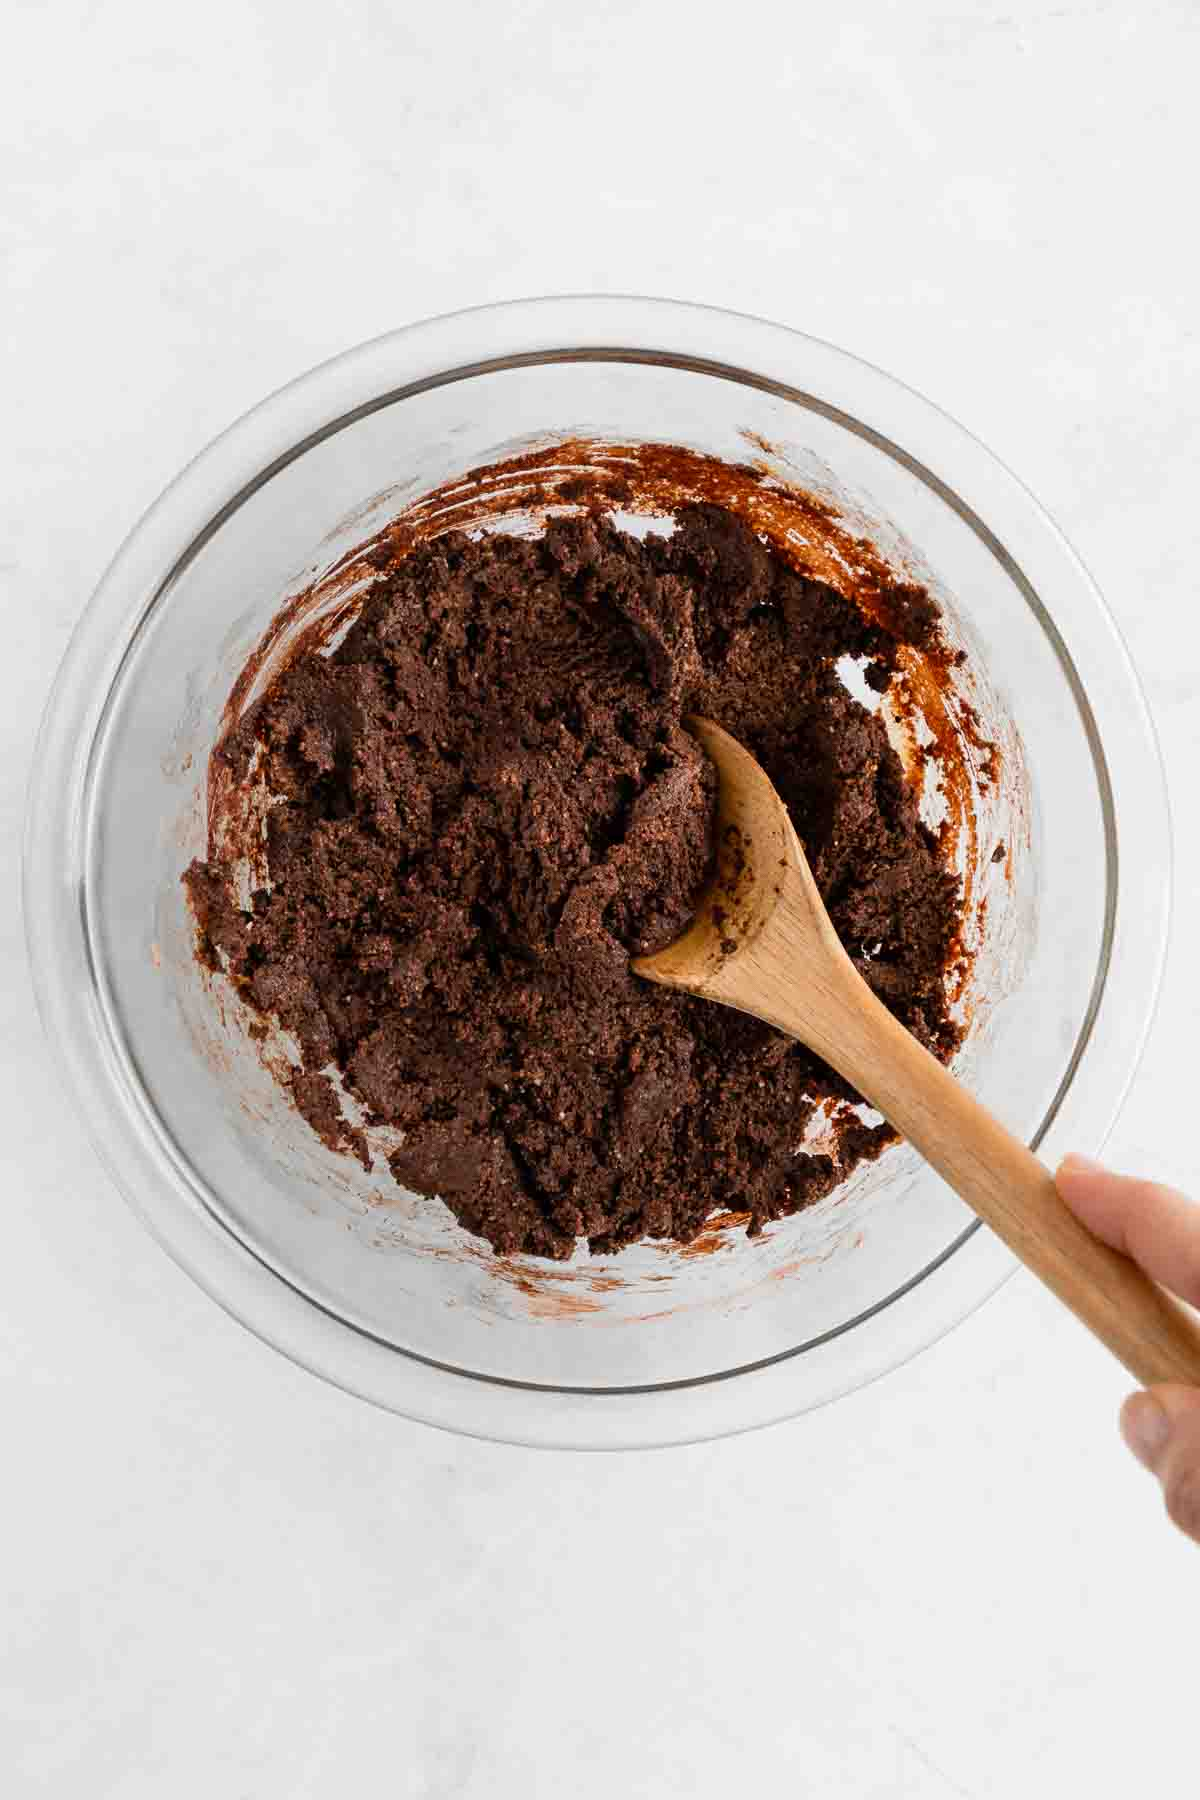 a wooden spoon mixing no bake brownie dough inside a glass bowl